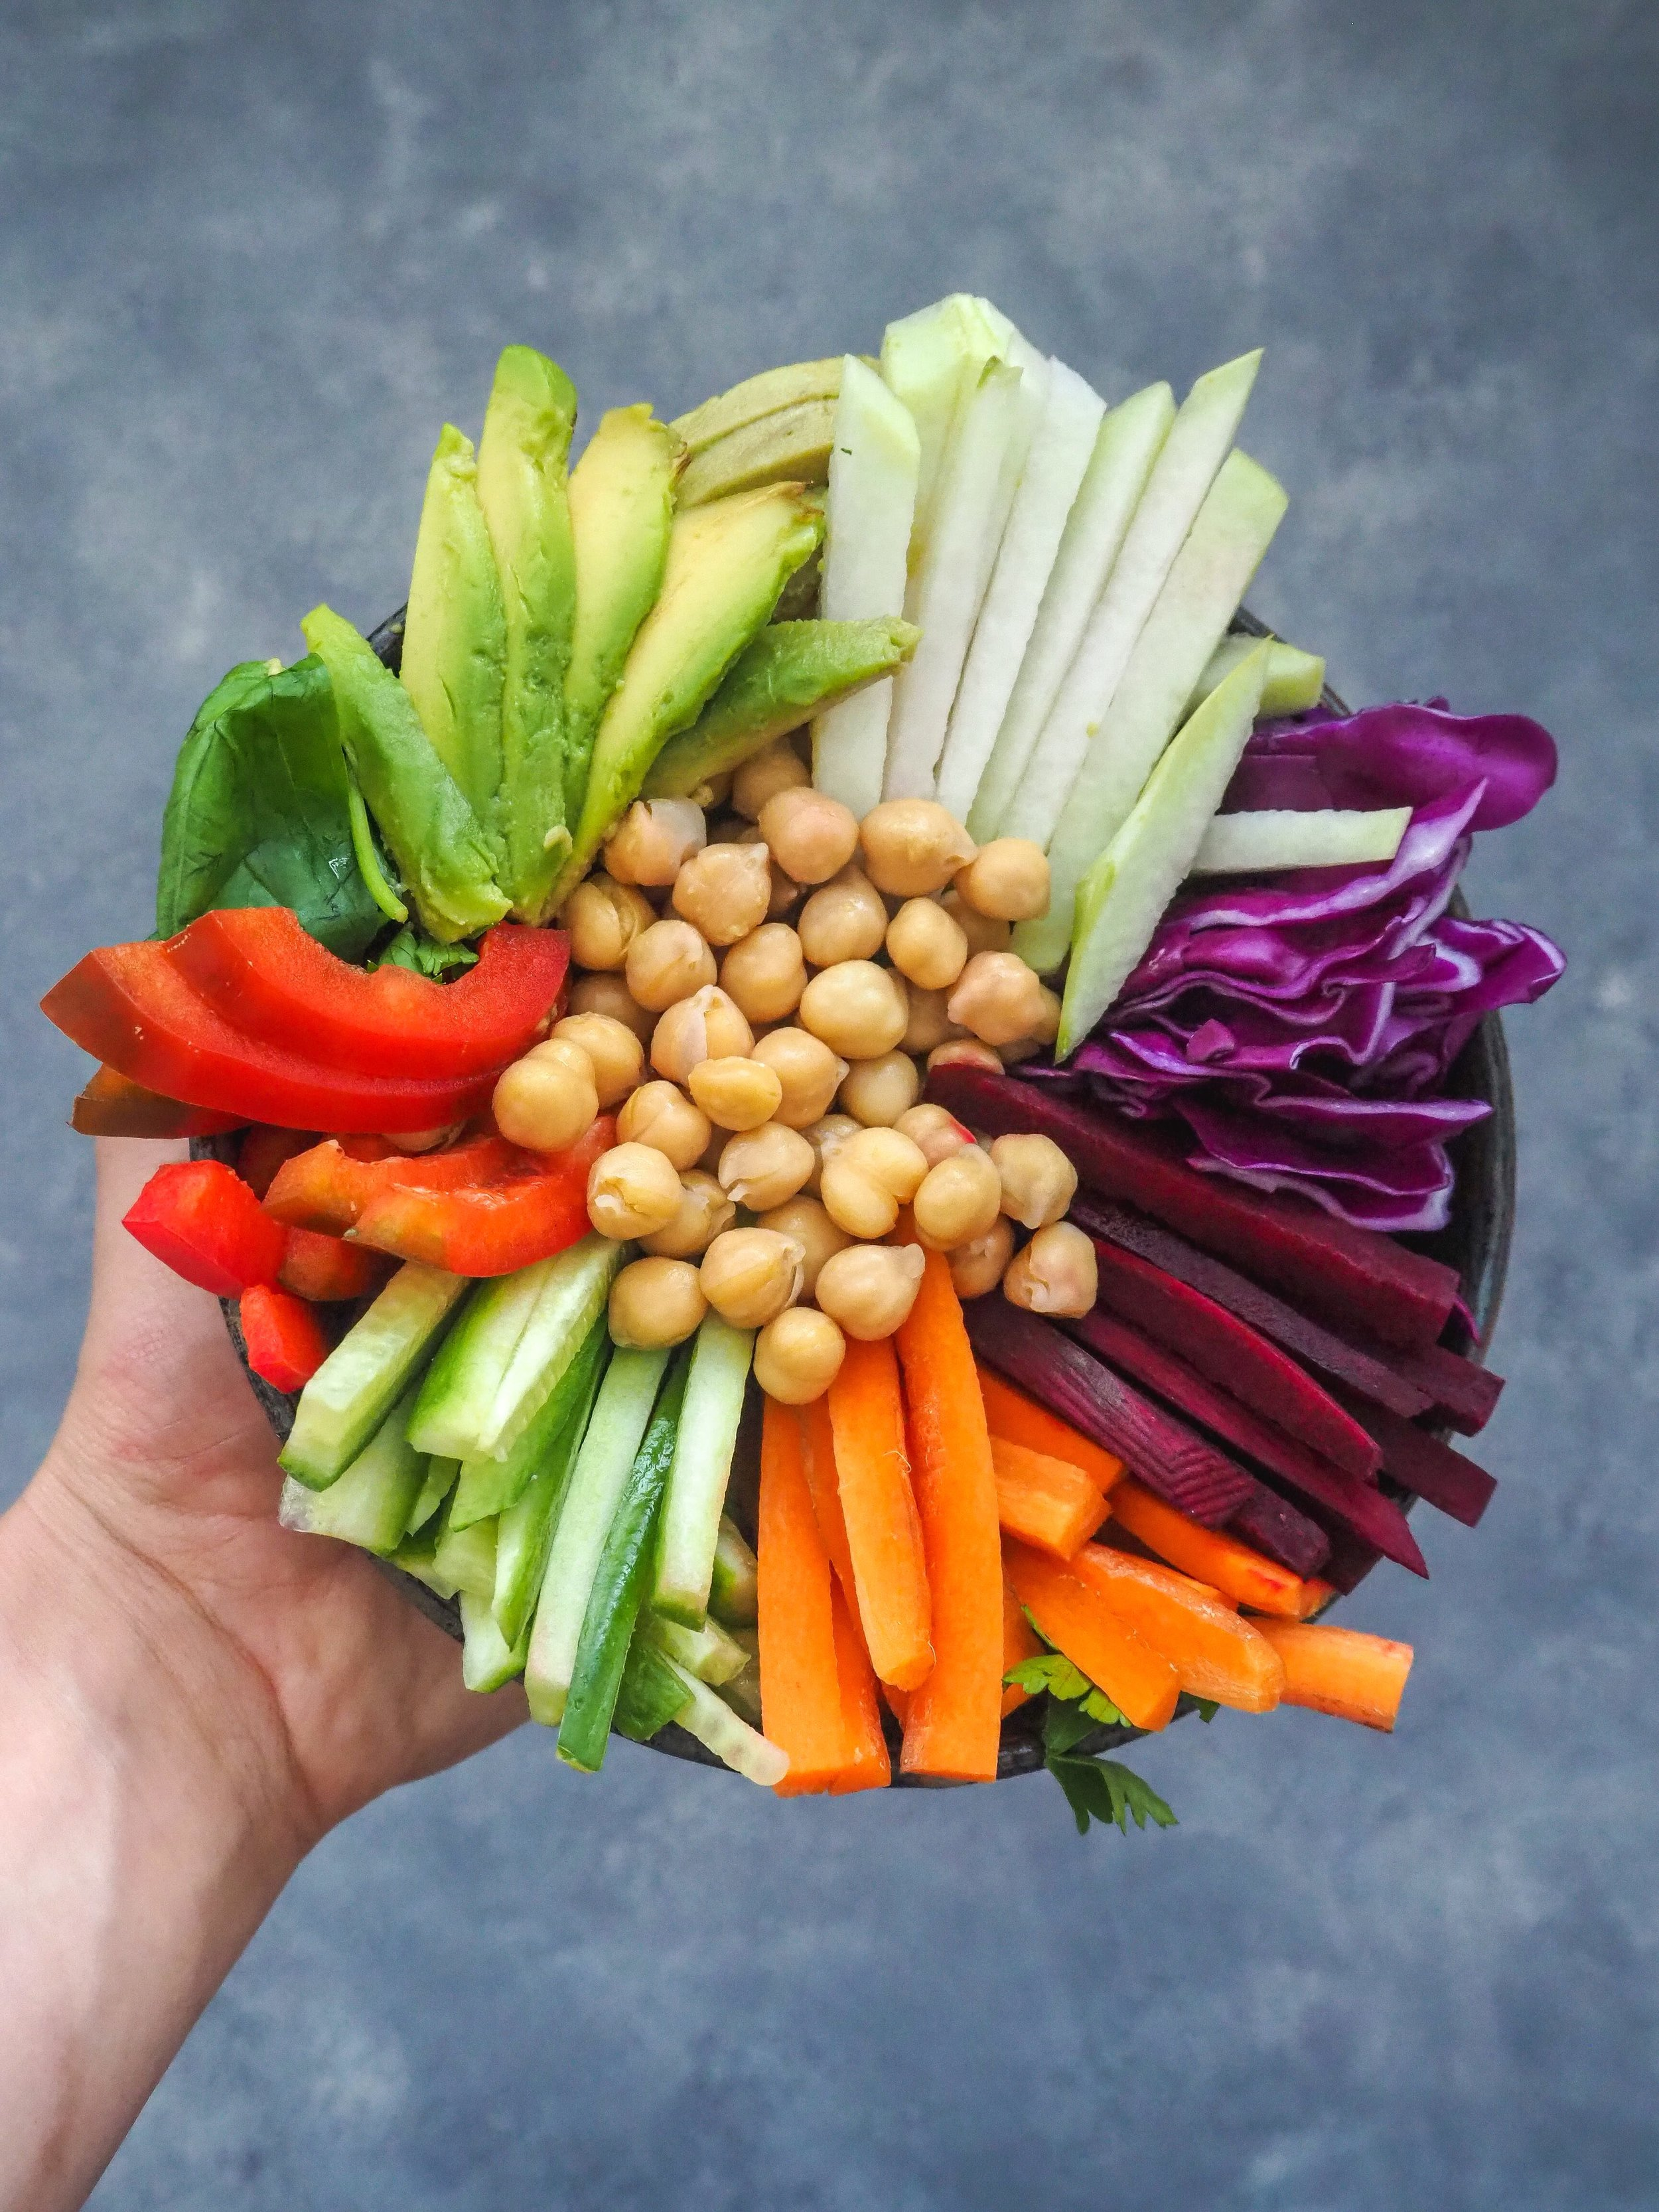 Carrots, cucumber, red pepper, raw beet, red cabbage, kohlrabi, avocado, lettuce, chickpeas, basil, and romaine lettuce in a bowl.